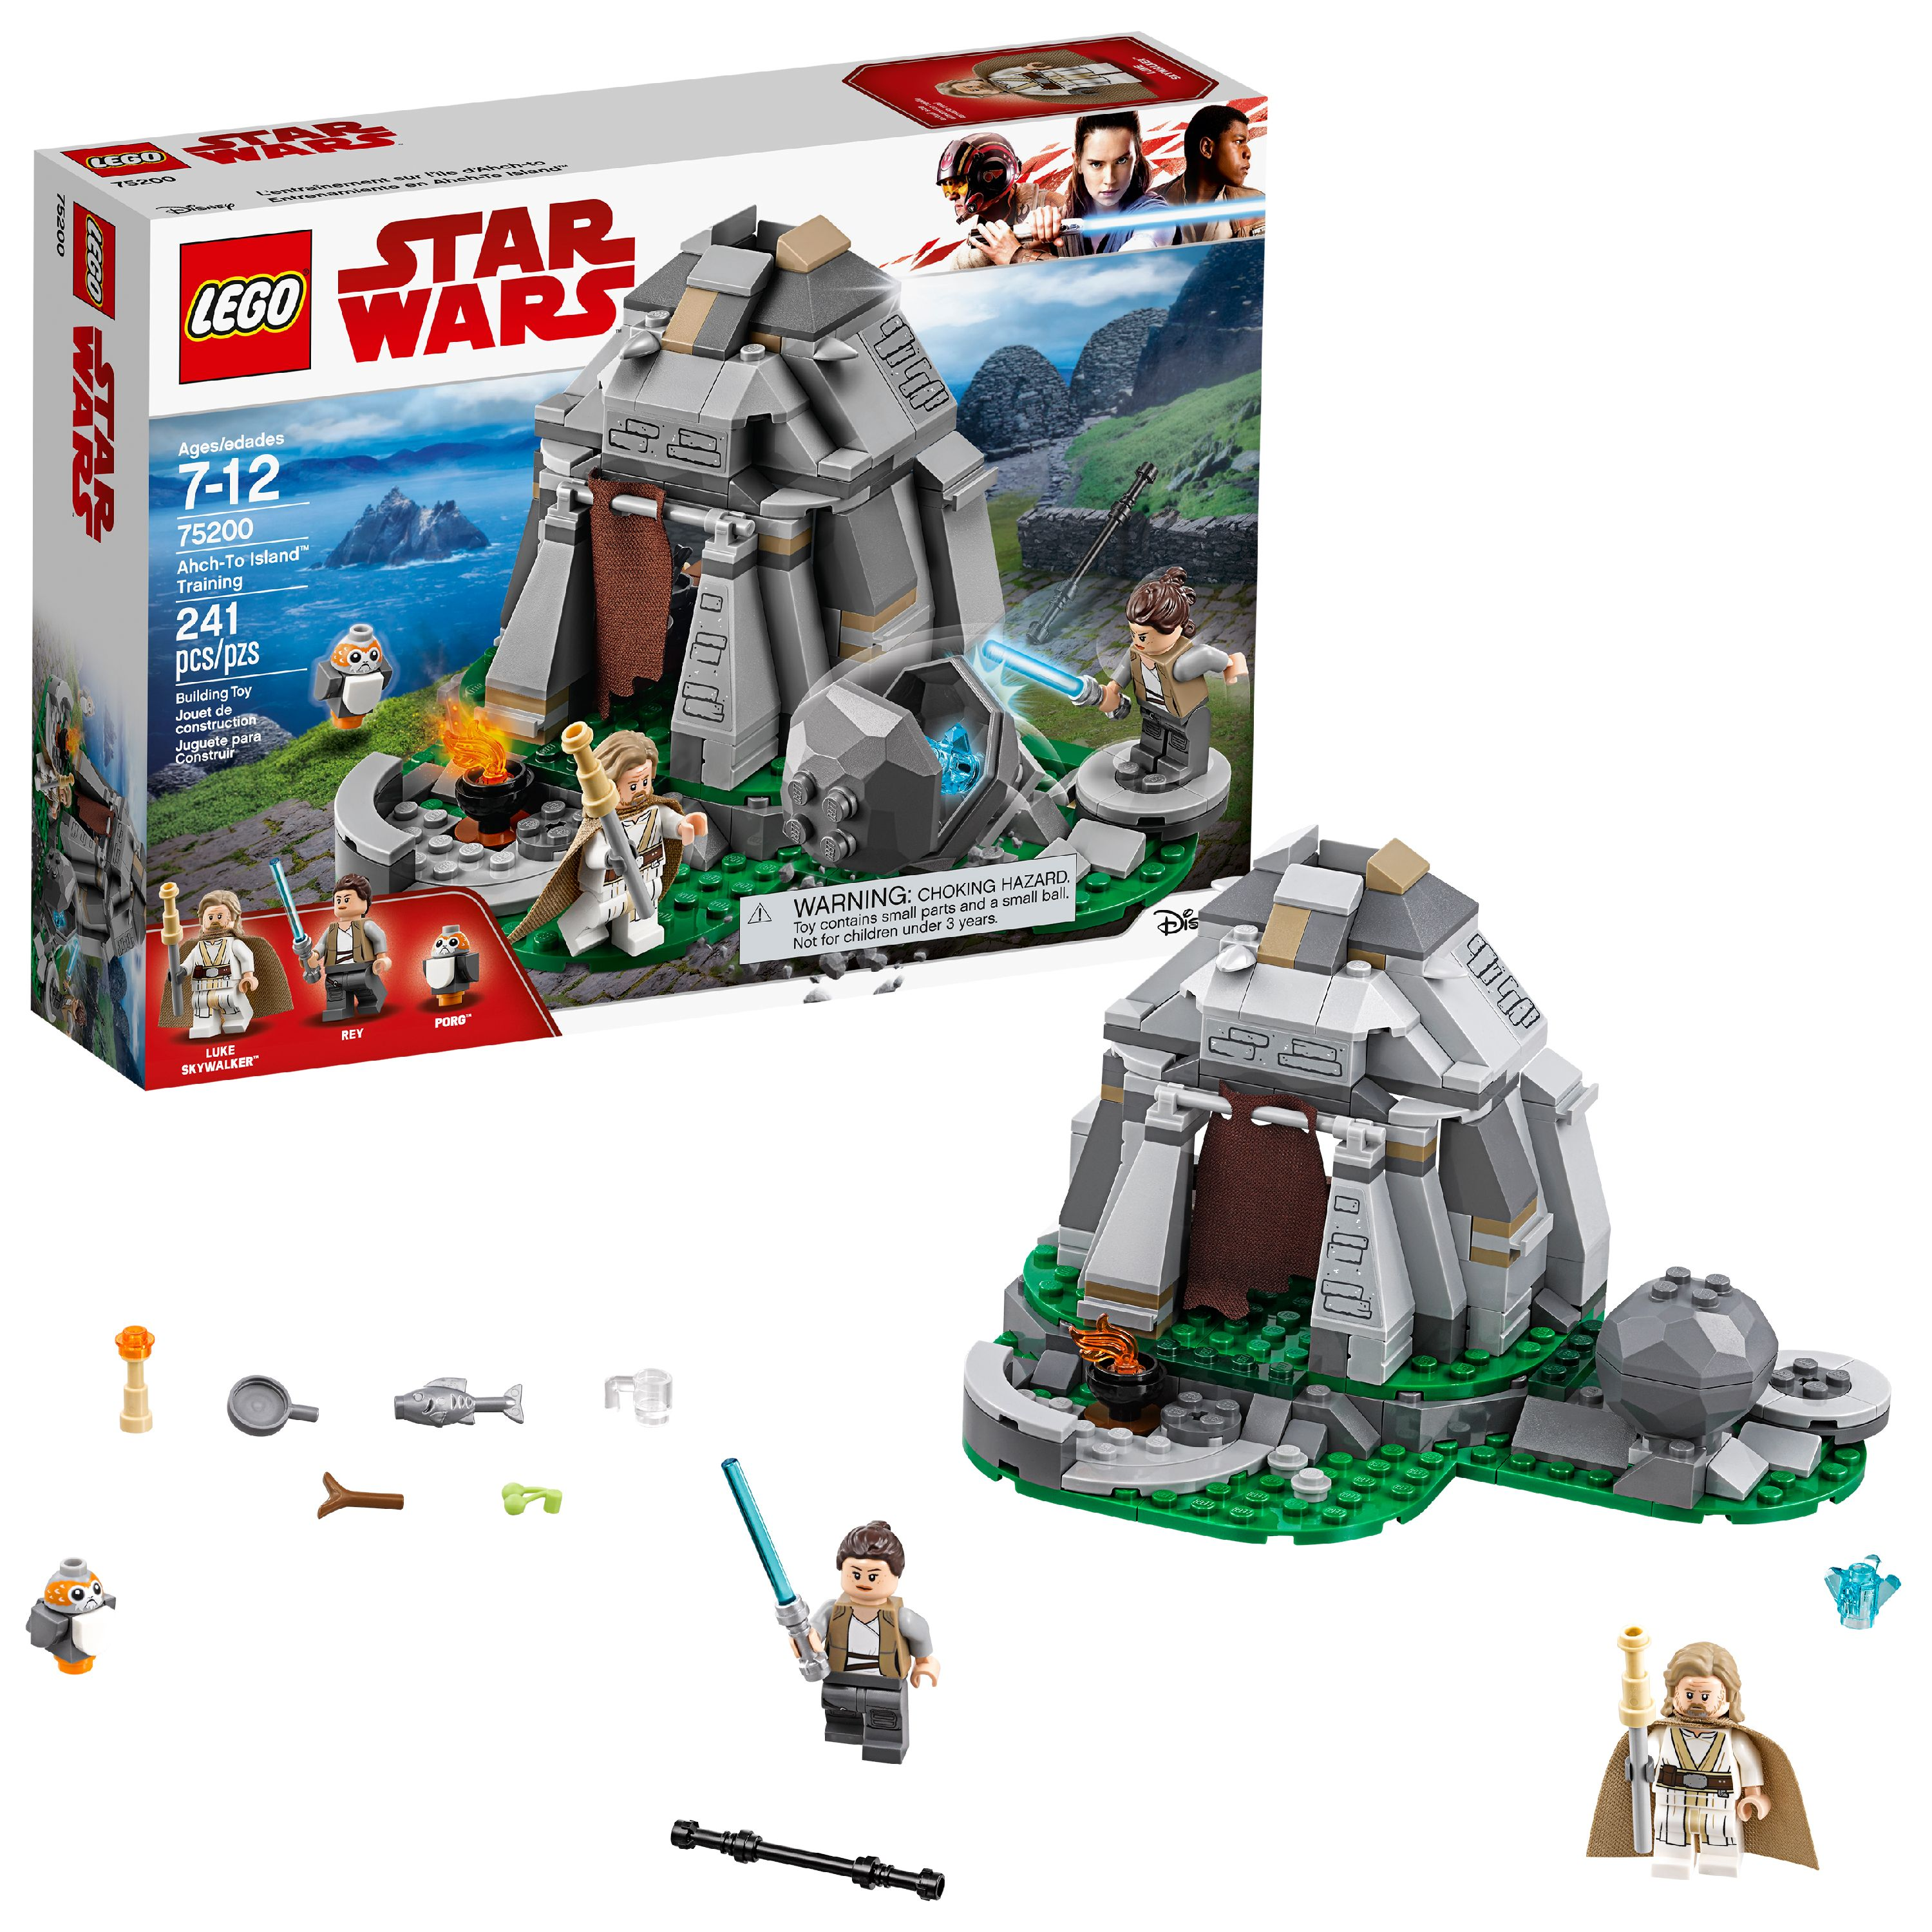 LEGO Star Wars™ Ahch-To Island™ Training 75200